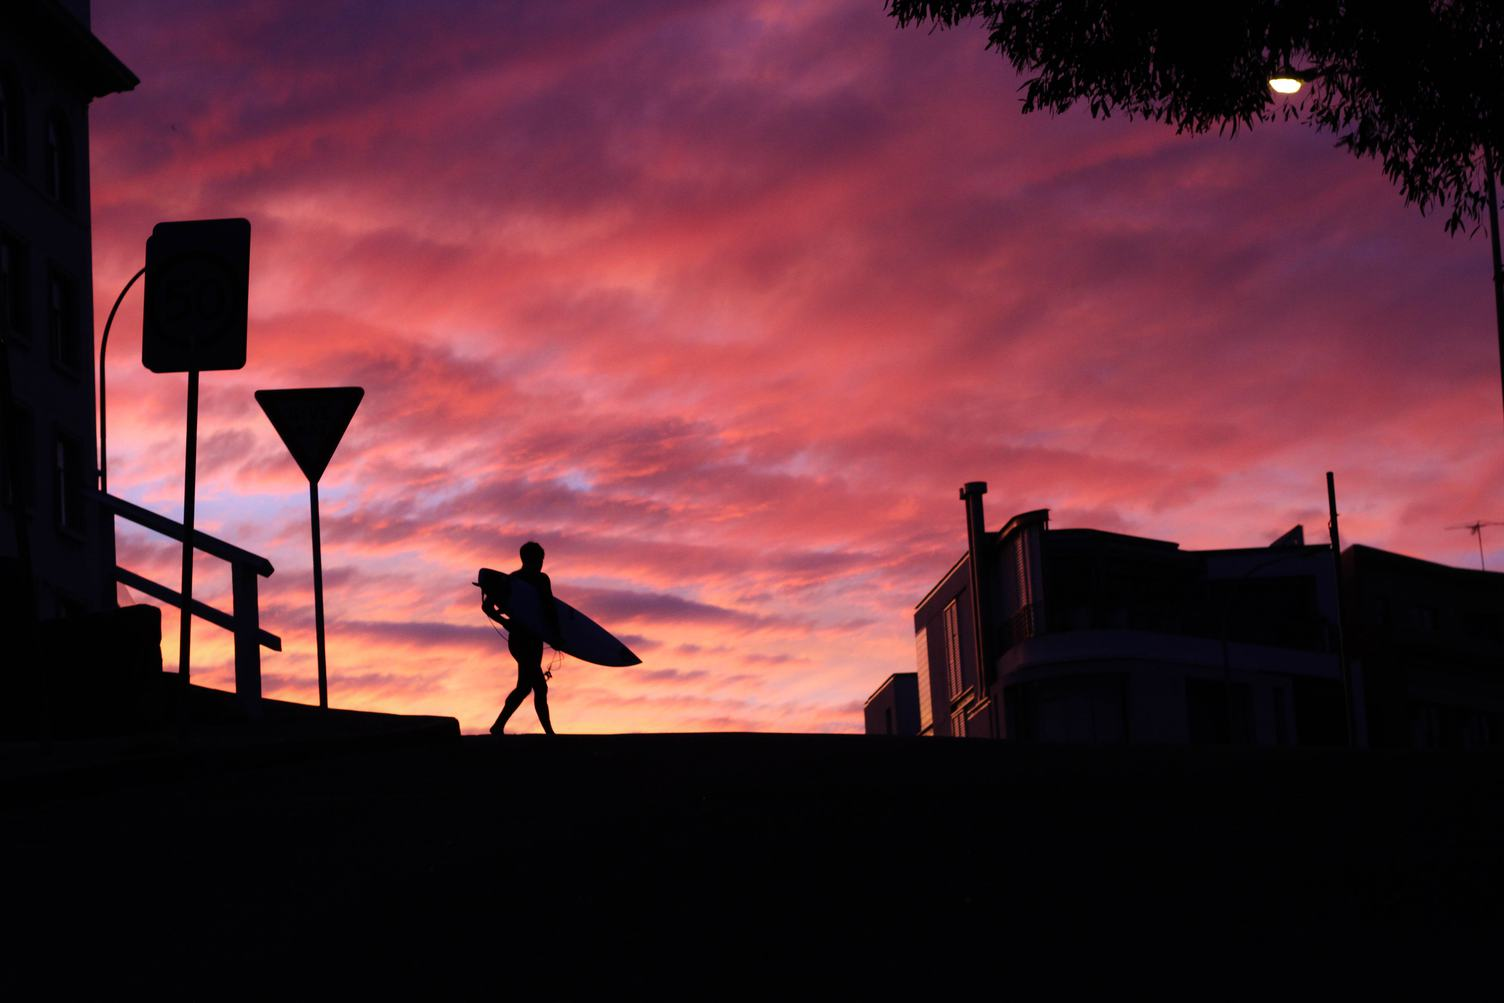 Silhouette of a Surfer against a Sunset Sky